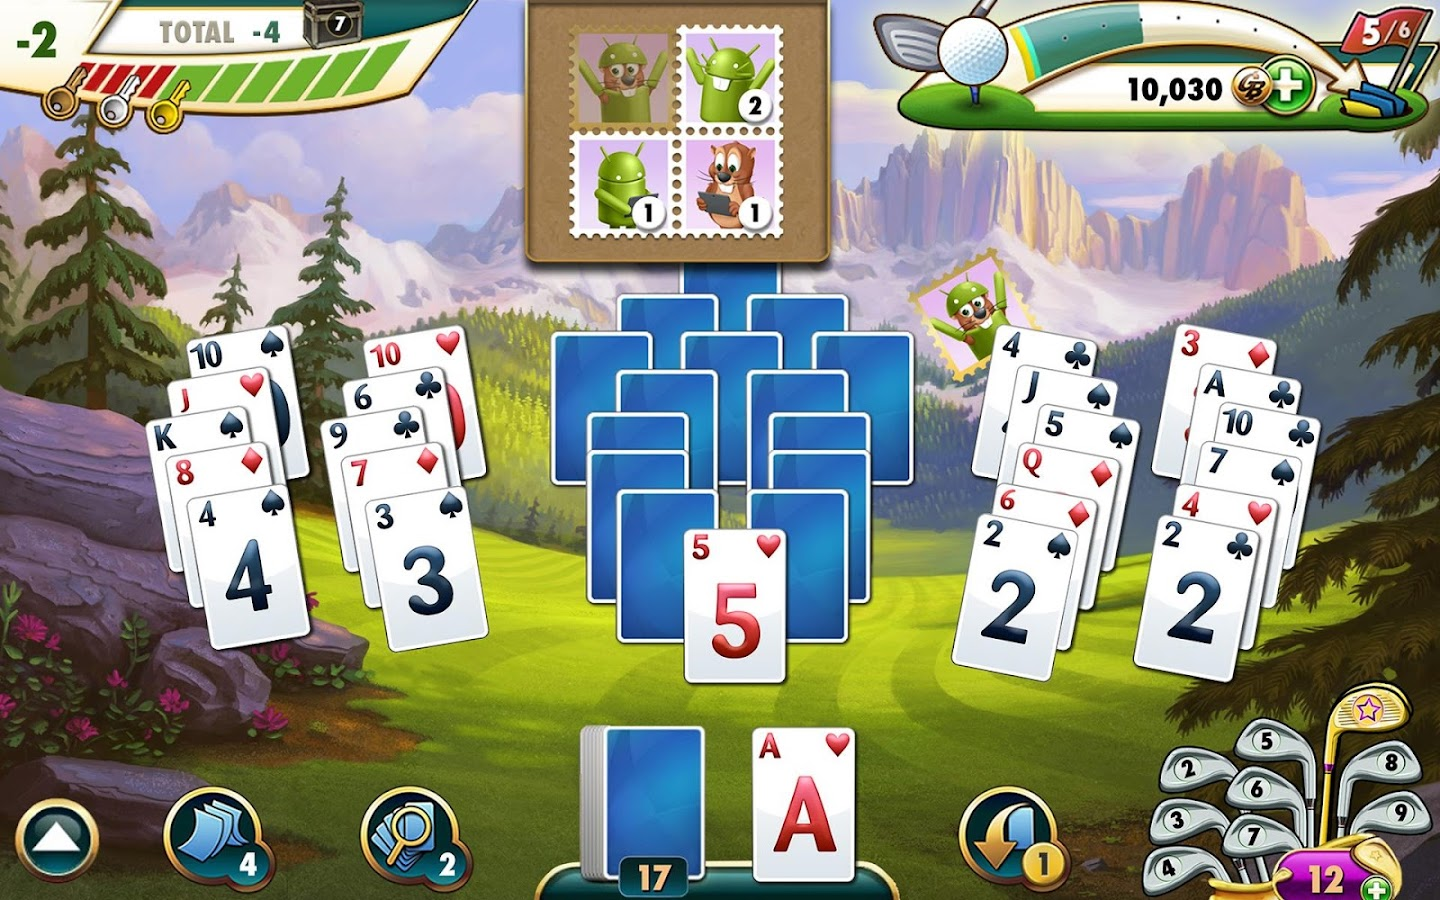 Fairway solitaire android apps on google play for Big fish games android